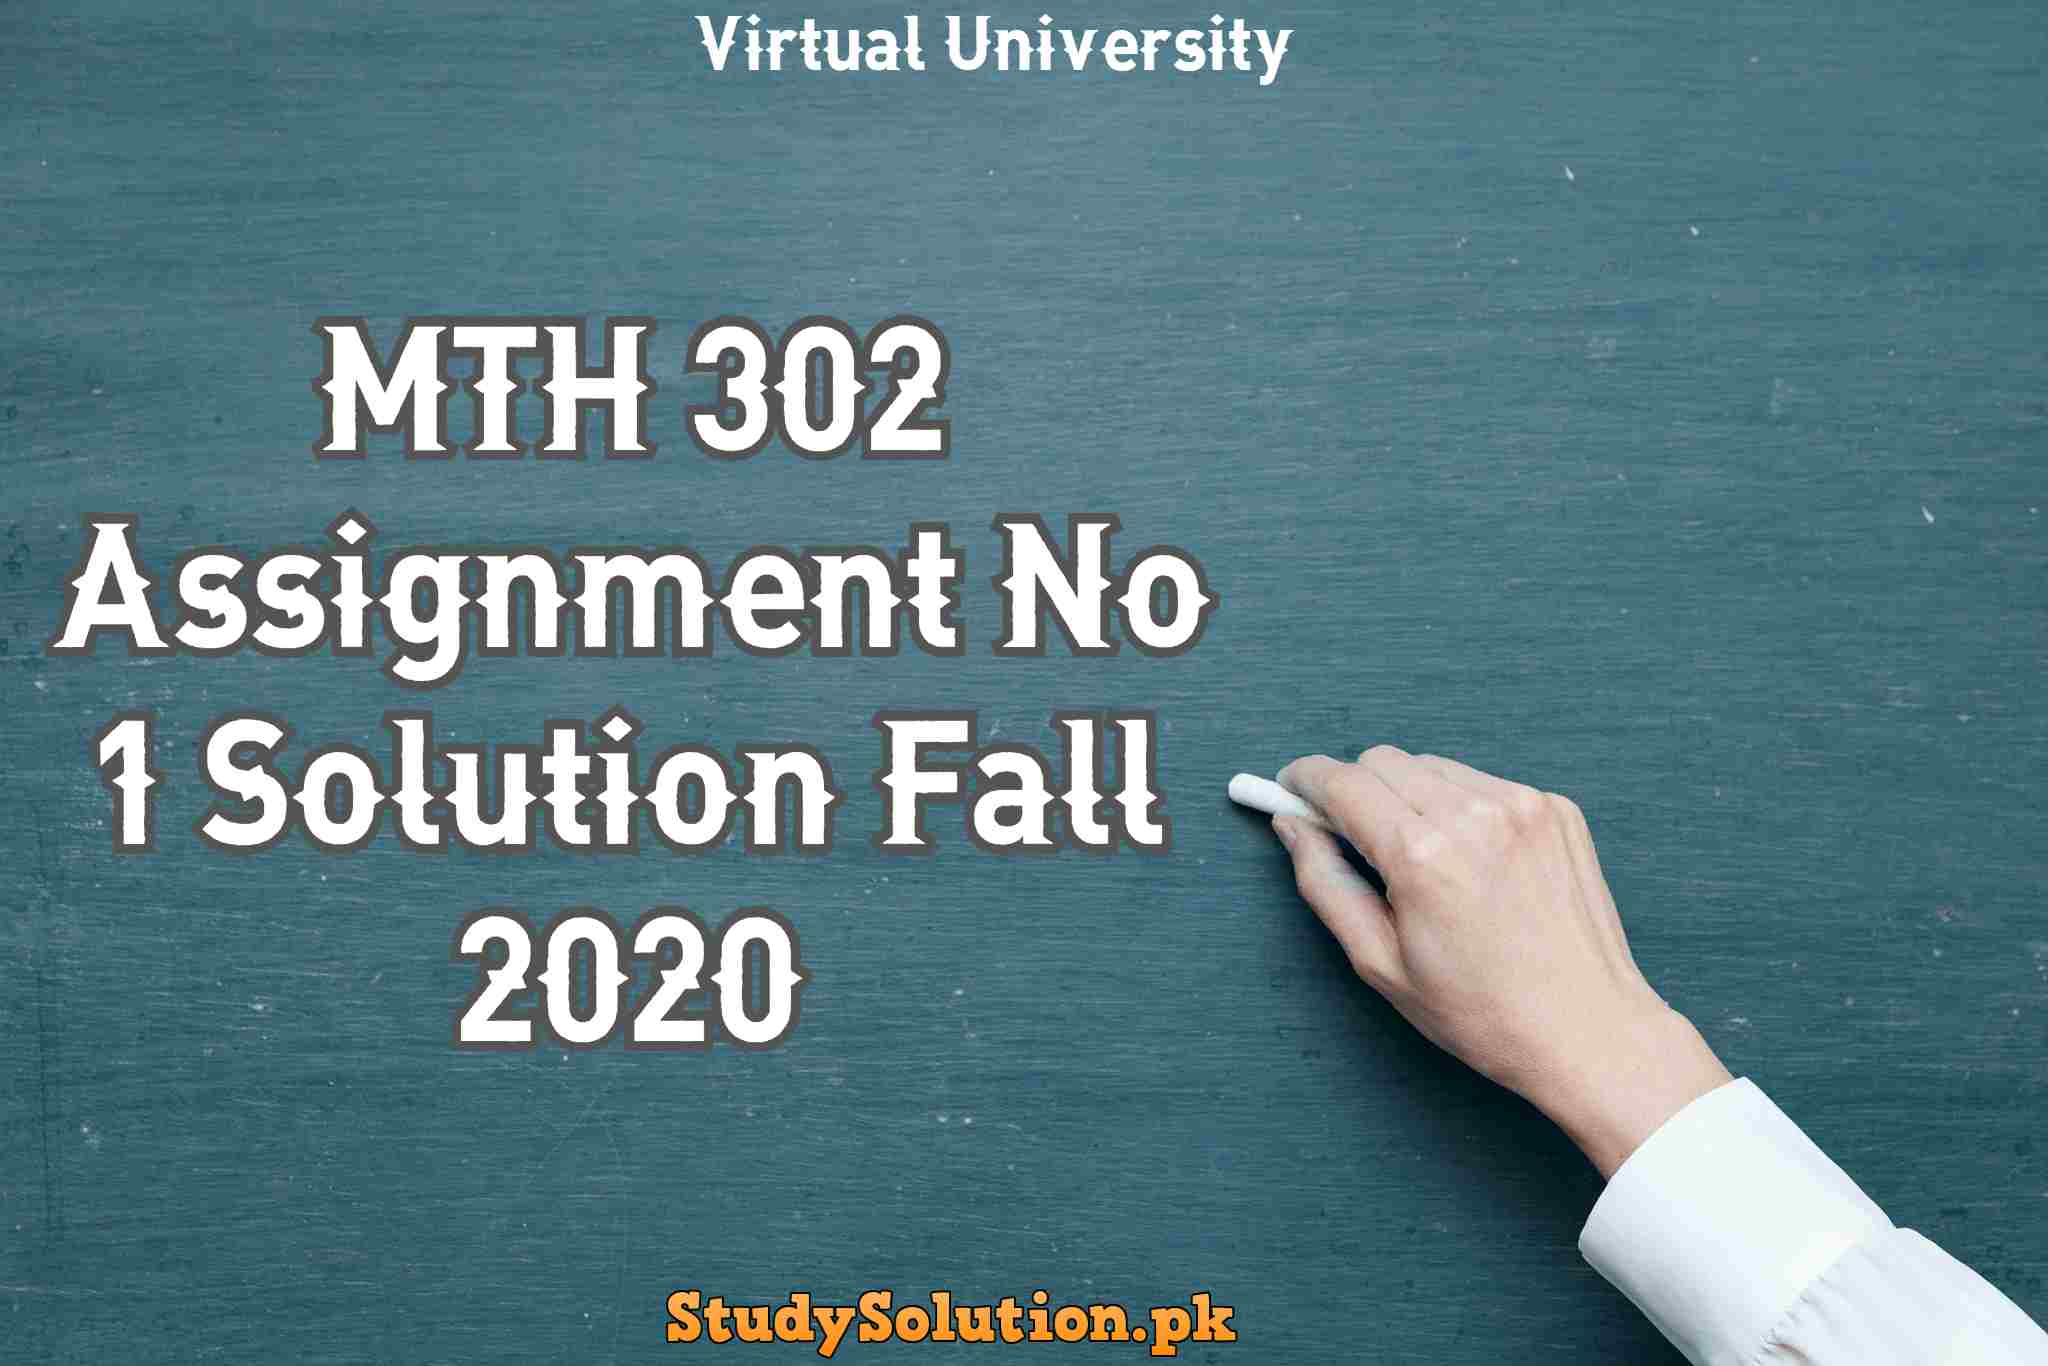 MTH 302 Assignment No 1 Solution Fall 2020